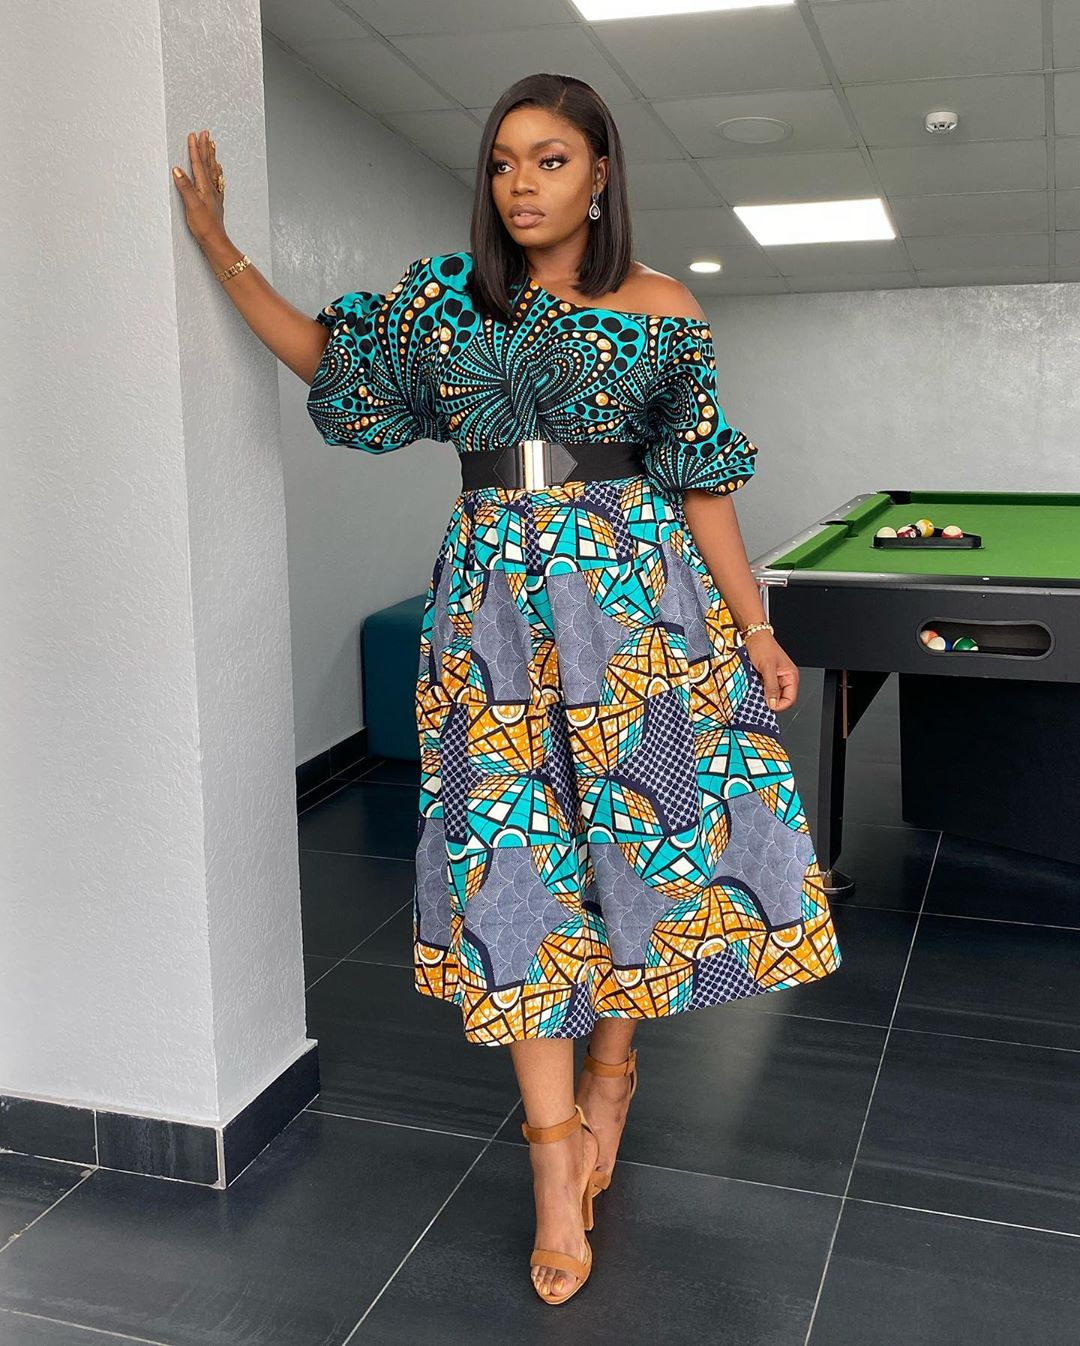 Bisola Aiyeola Struts Her Ankara Look With Confidence As Always